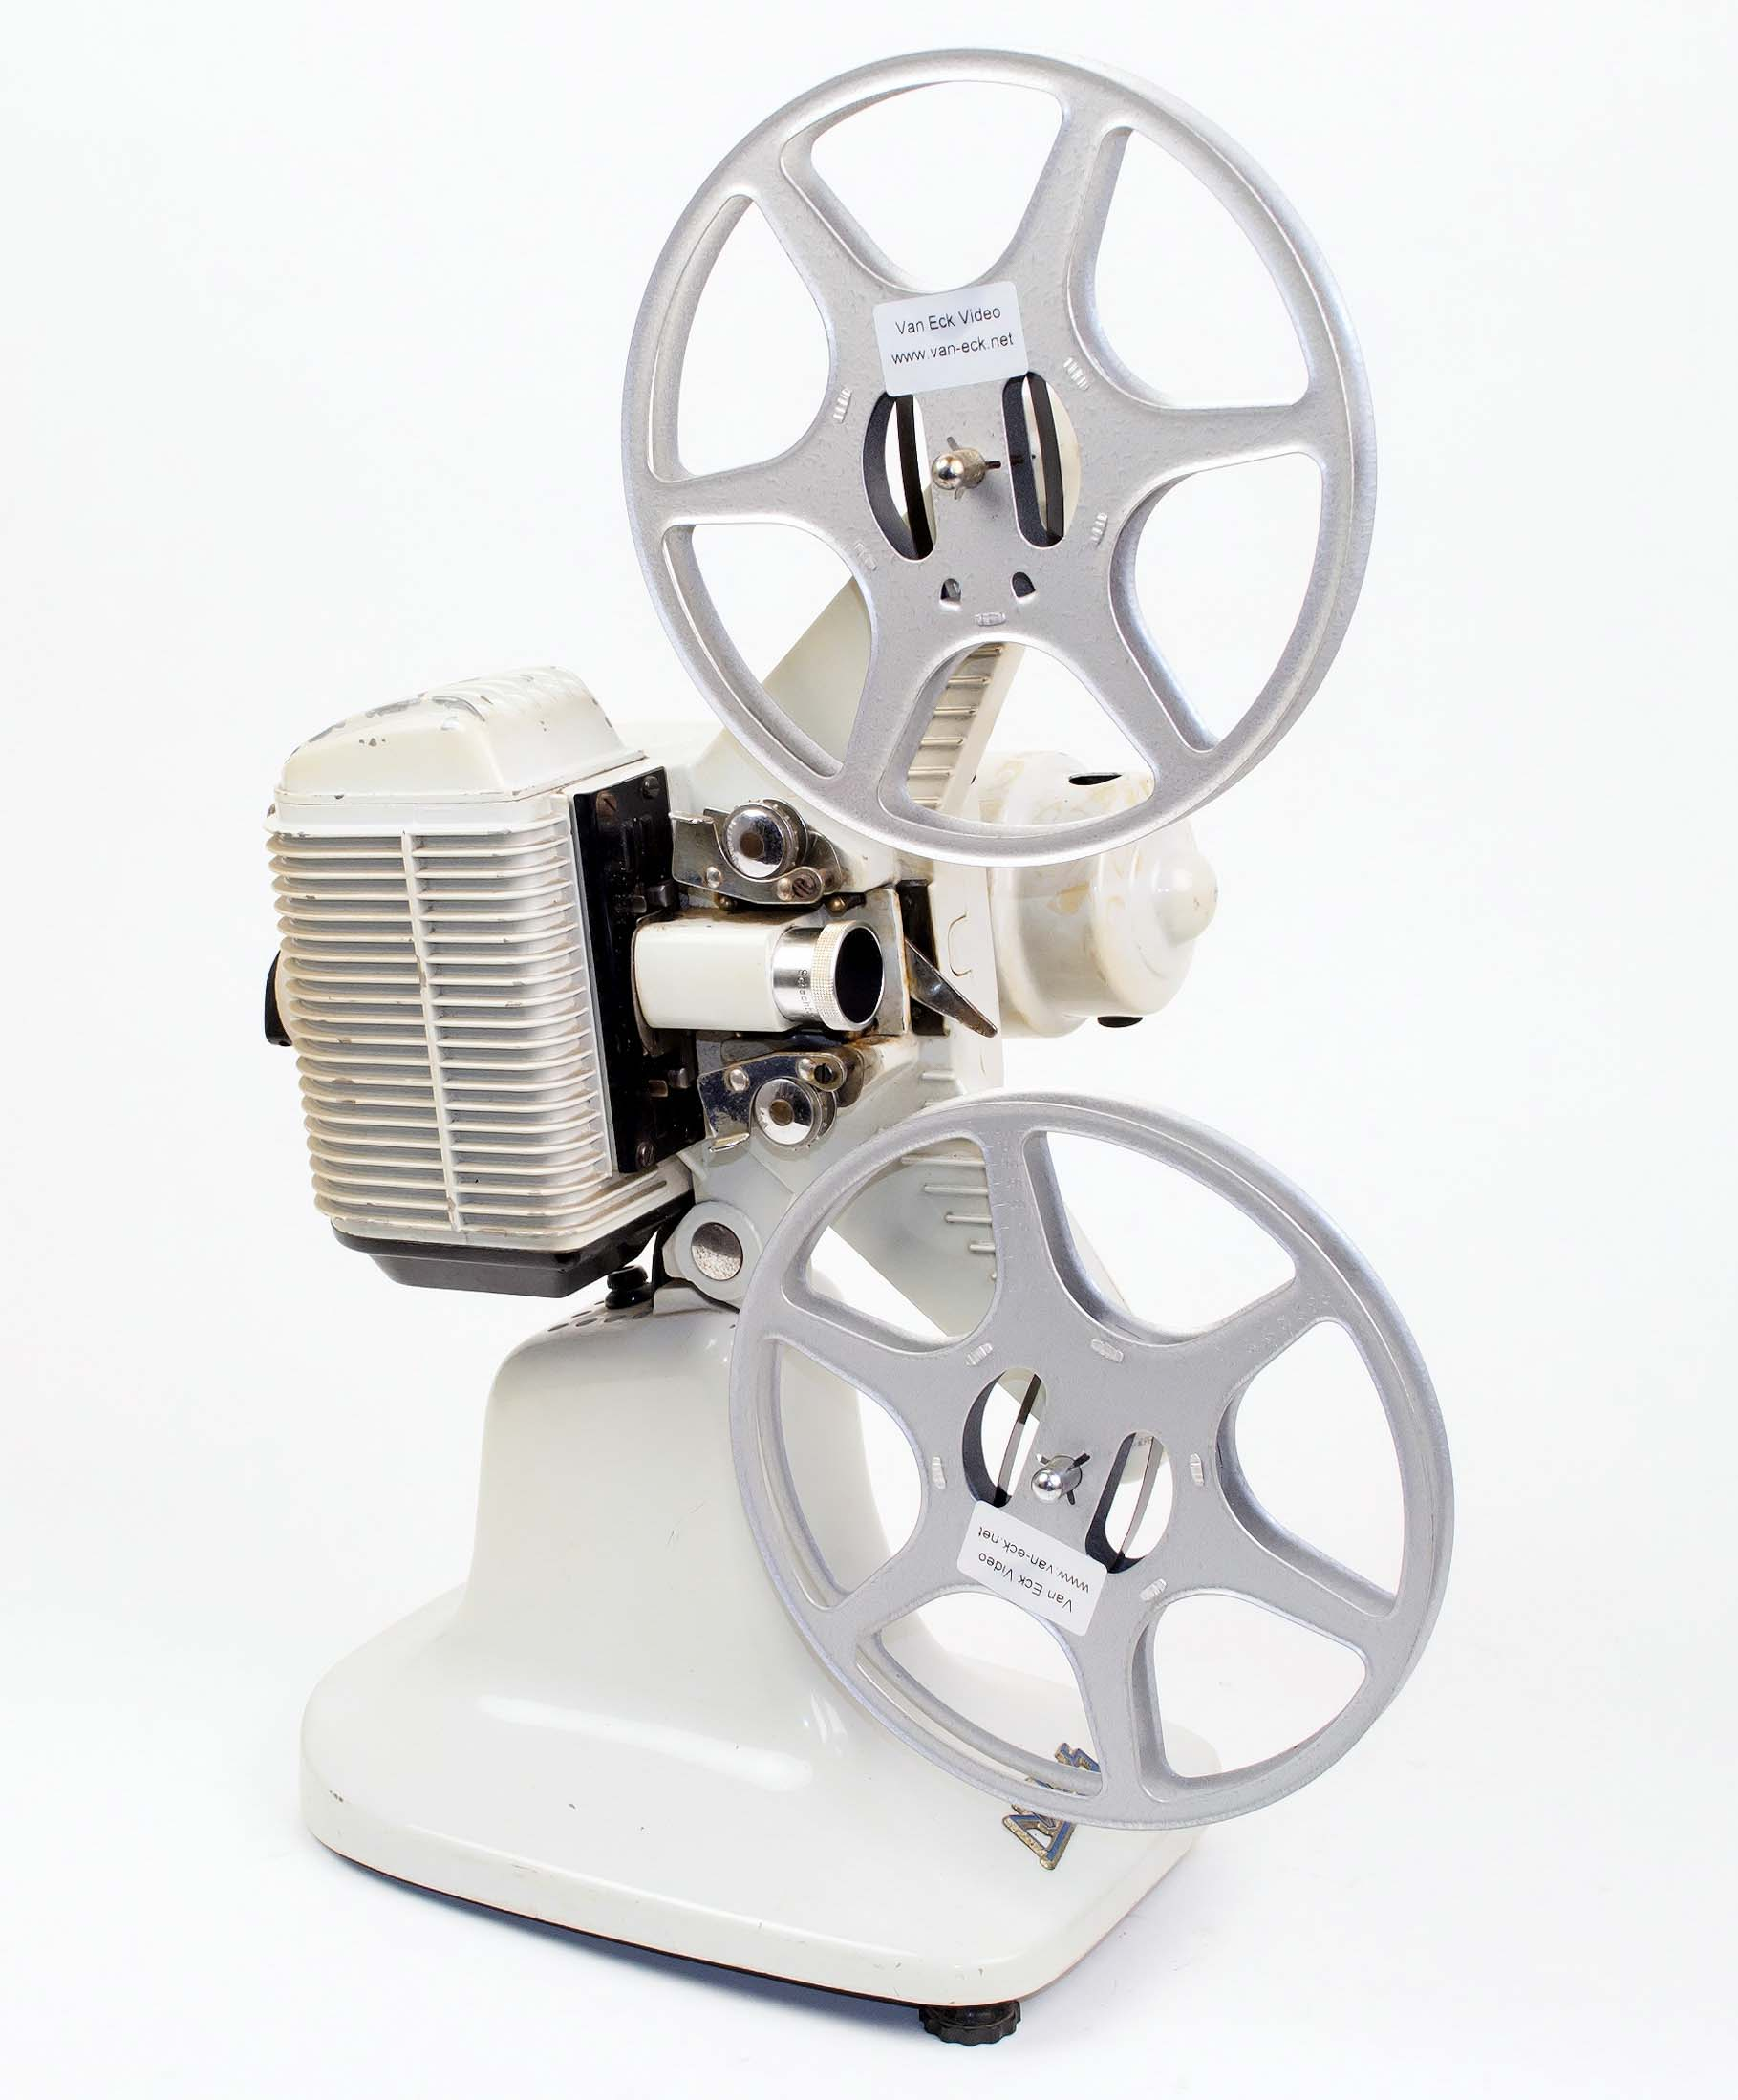 Nilus 8mm projector, Film Projectors - Spare Parts and